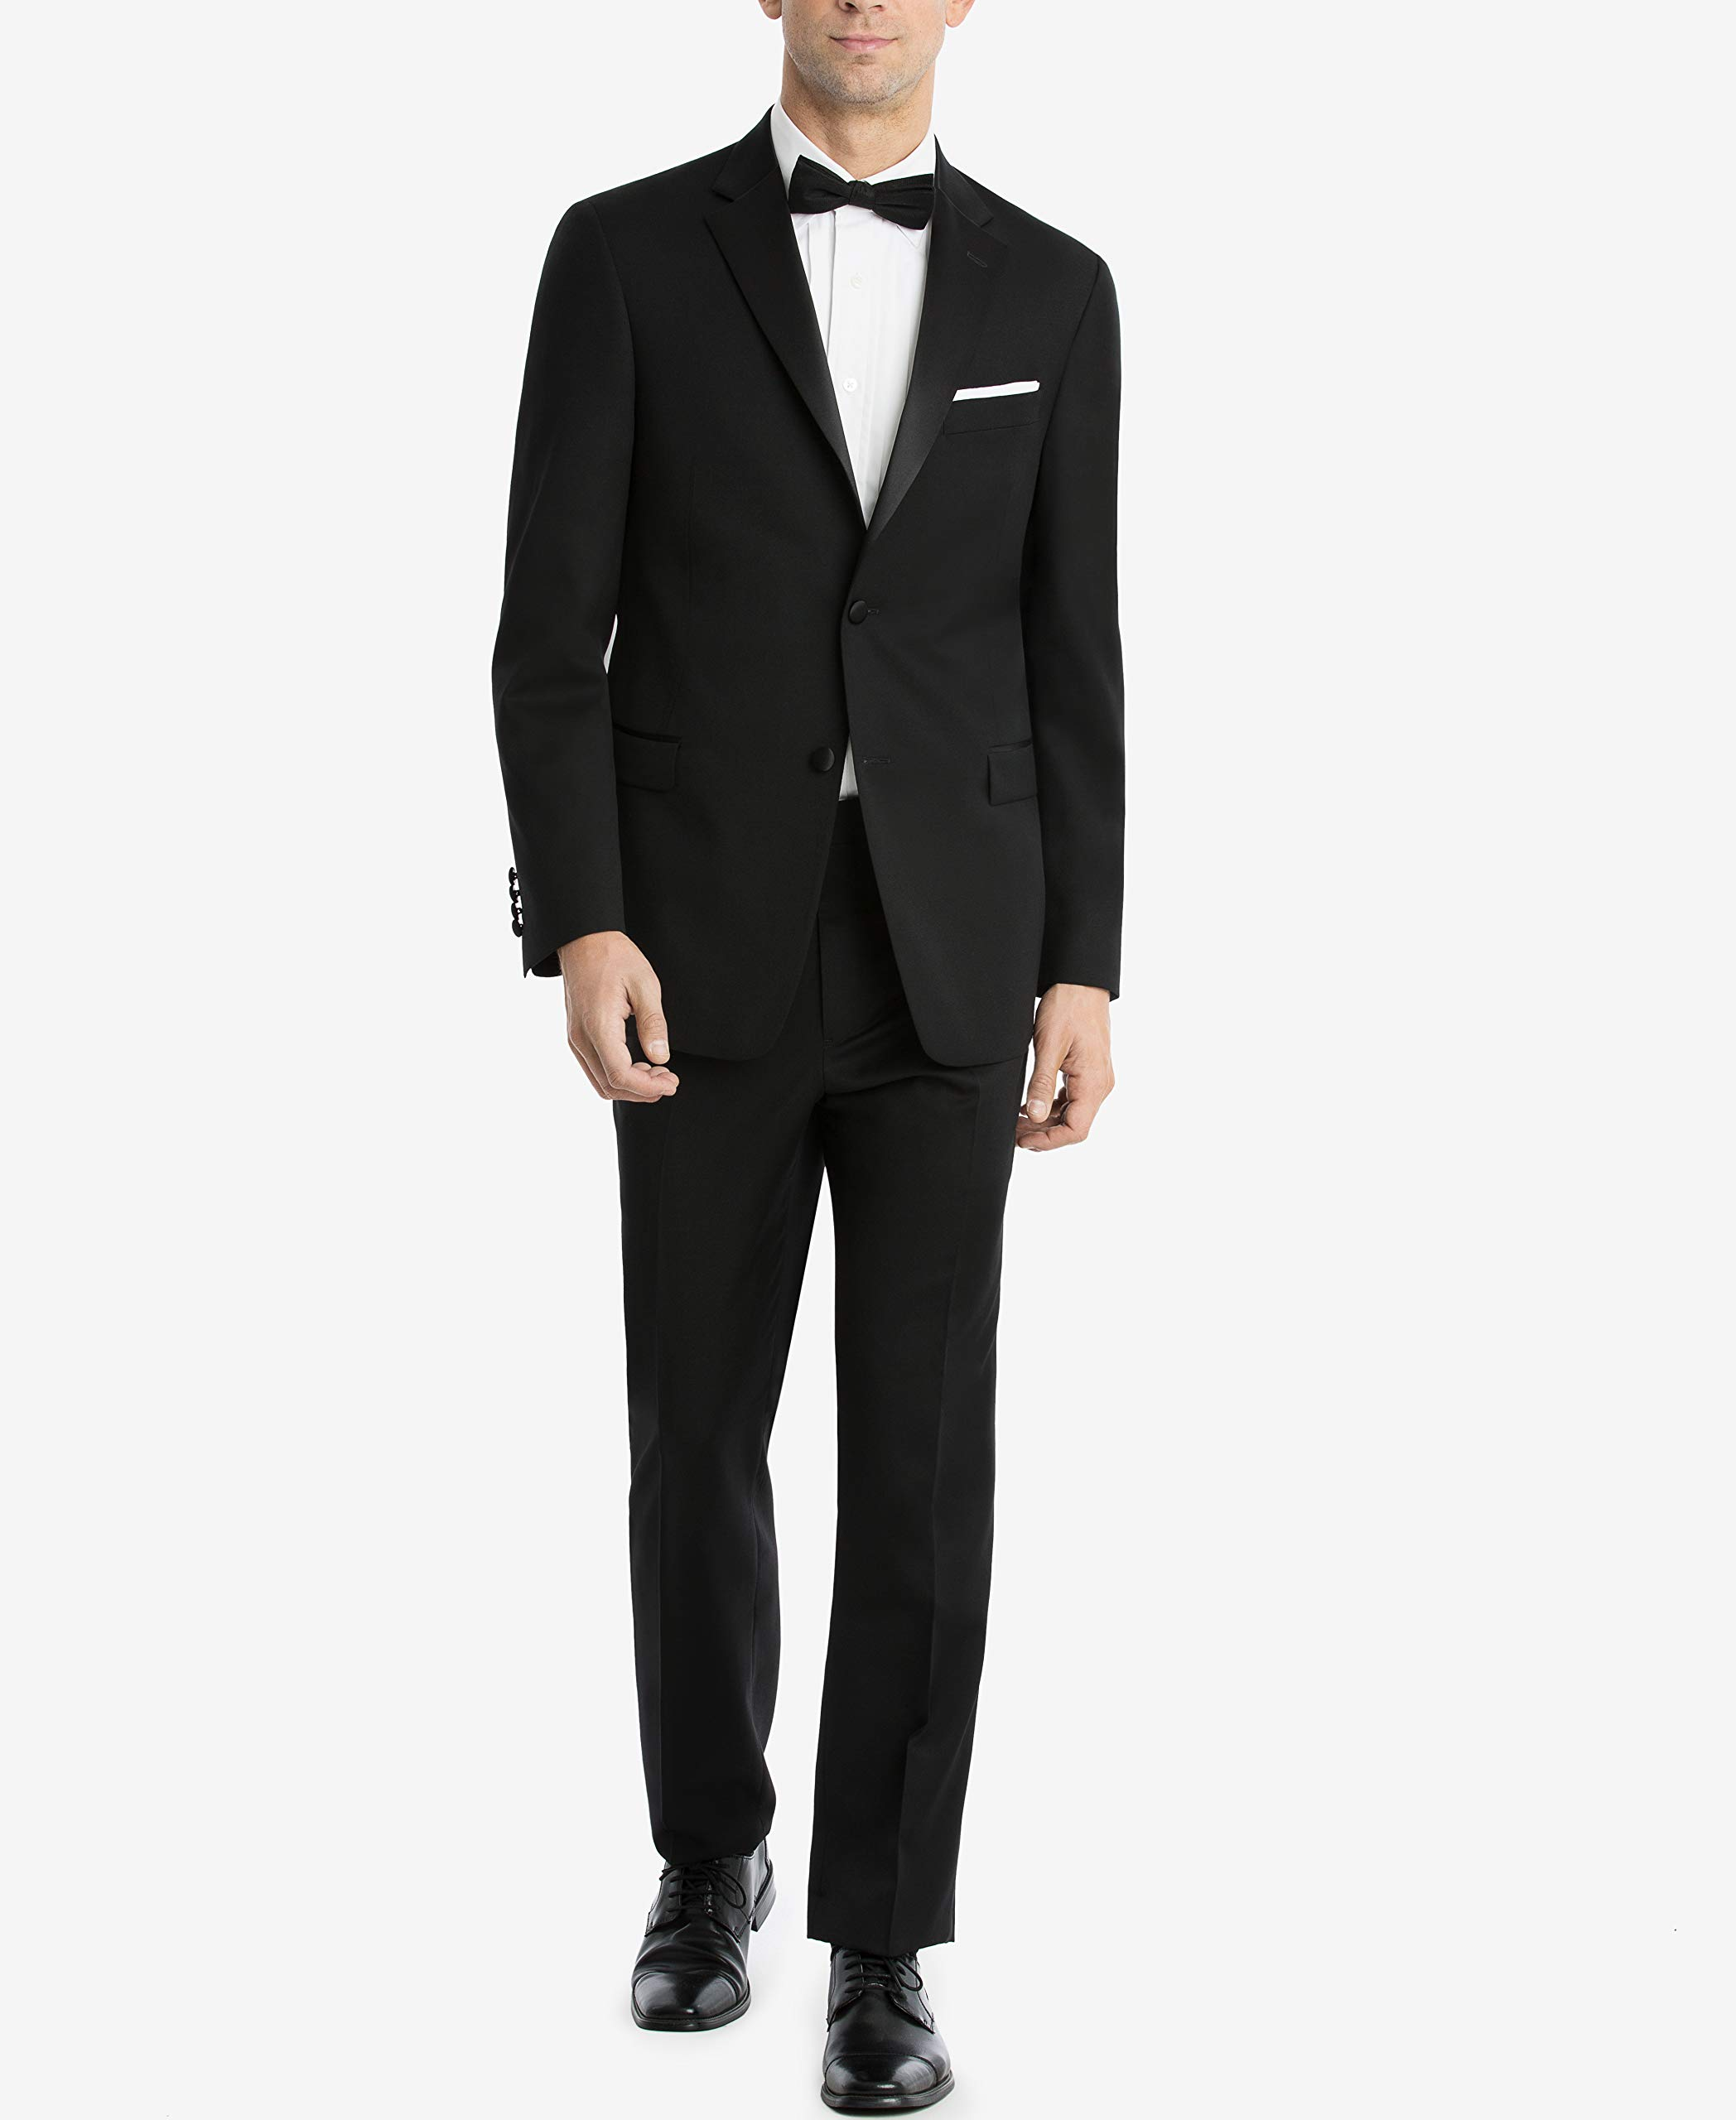 Tommy Hilfiger Men's Modern Fit Tuxedo Jacket, Black, 42R by Tommy Hilfiger